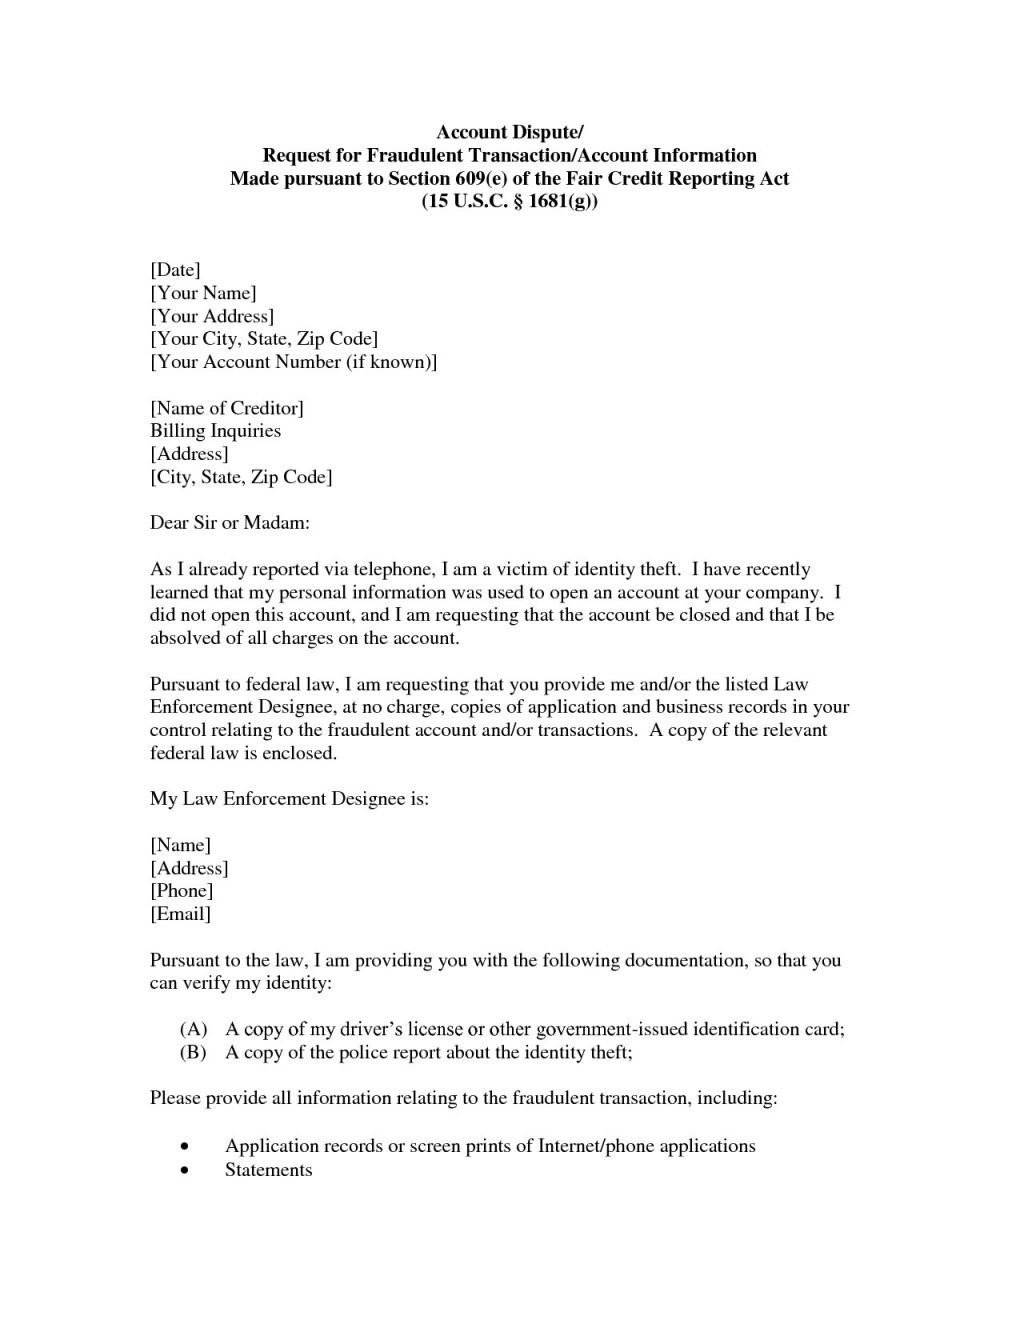 Section 609 Credit Dispute Letter Template - top Section 609 Credit Dispute Letter Sample Vl46 – Documentaries